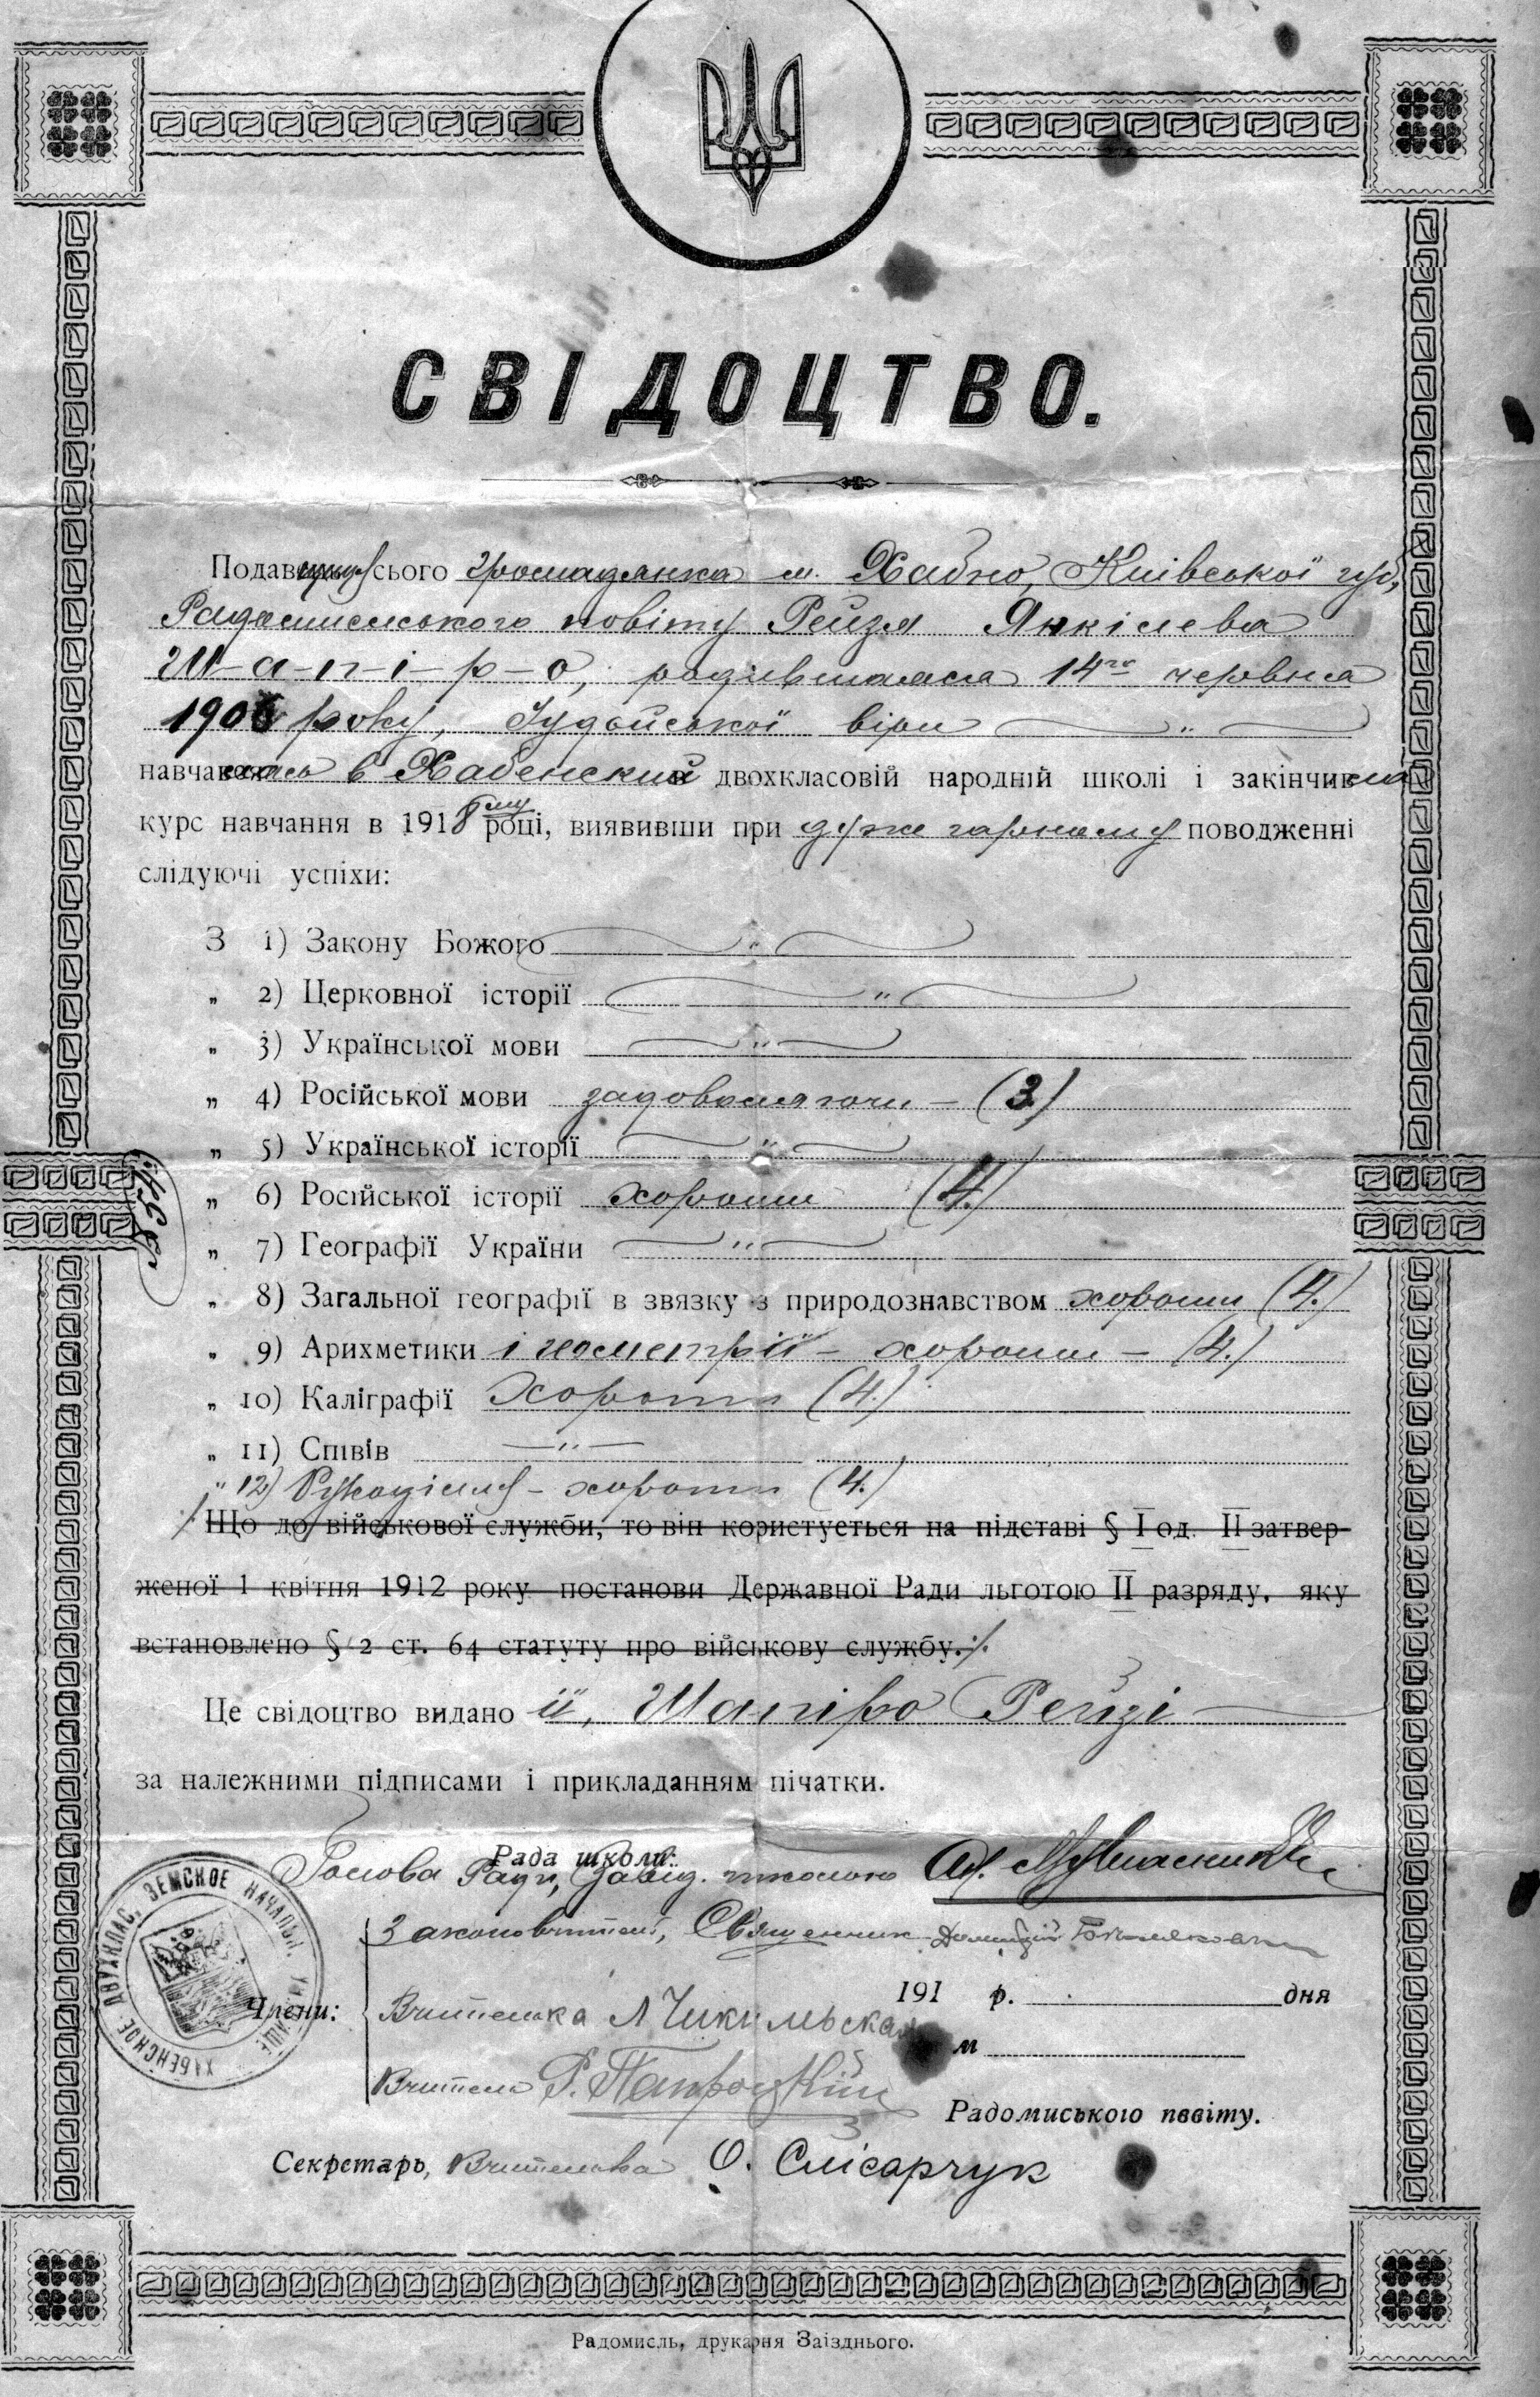 A unique Certificate of Graduation that certifies that Reizy Yankelevna Shapiro completed a 2-year school in Khabno in 1918. It is noteworthy that the certificate was issued in Ukrainian and had a trident emblem of the Ukrainian People's Republic, which existed only between 1917-1919